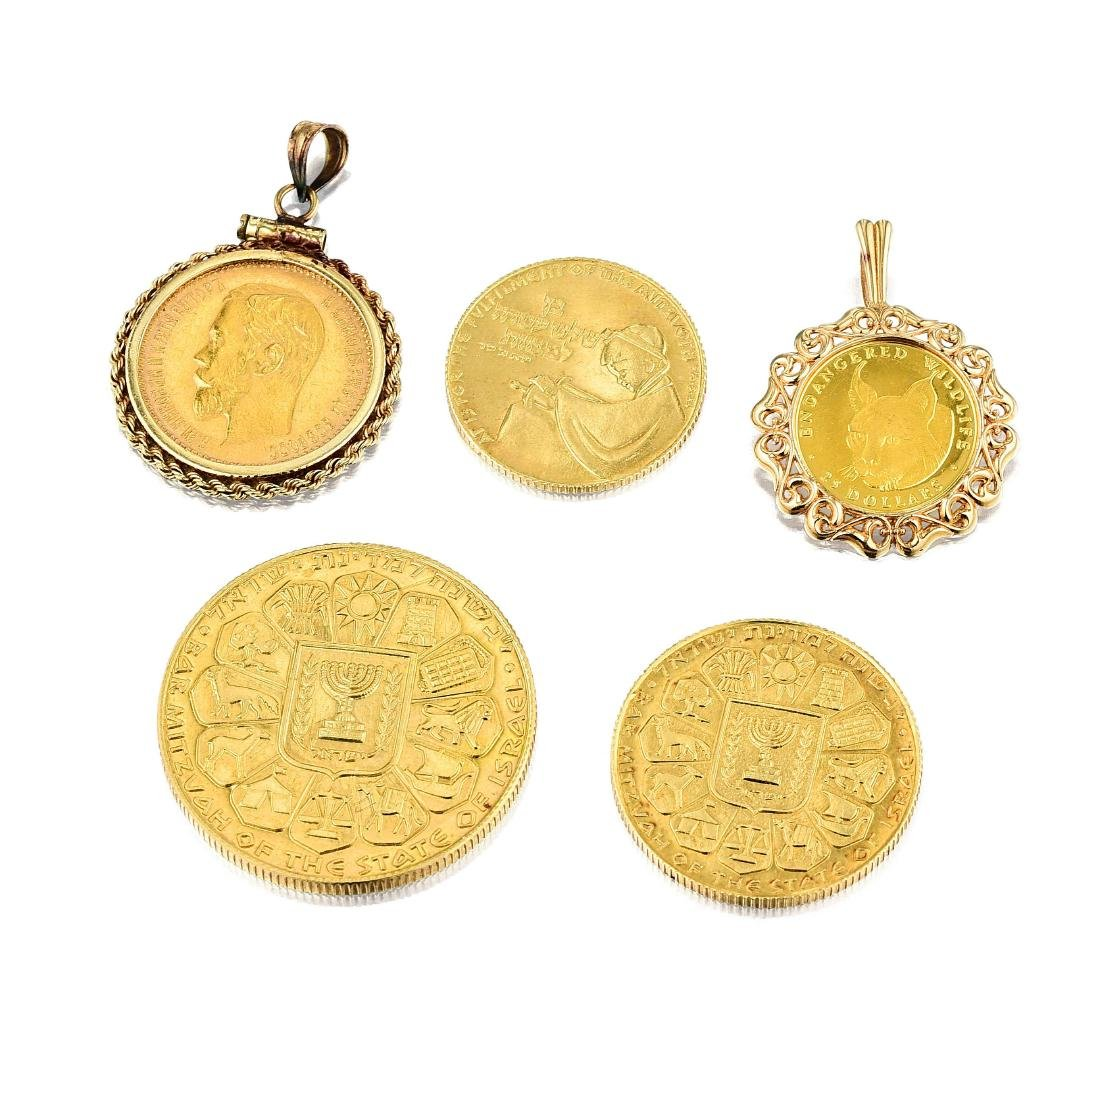 A Group of Gold Coins and Gold Coin Jewelry